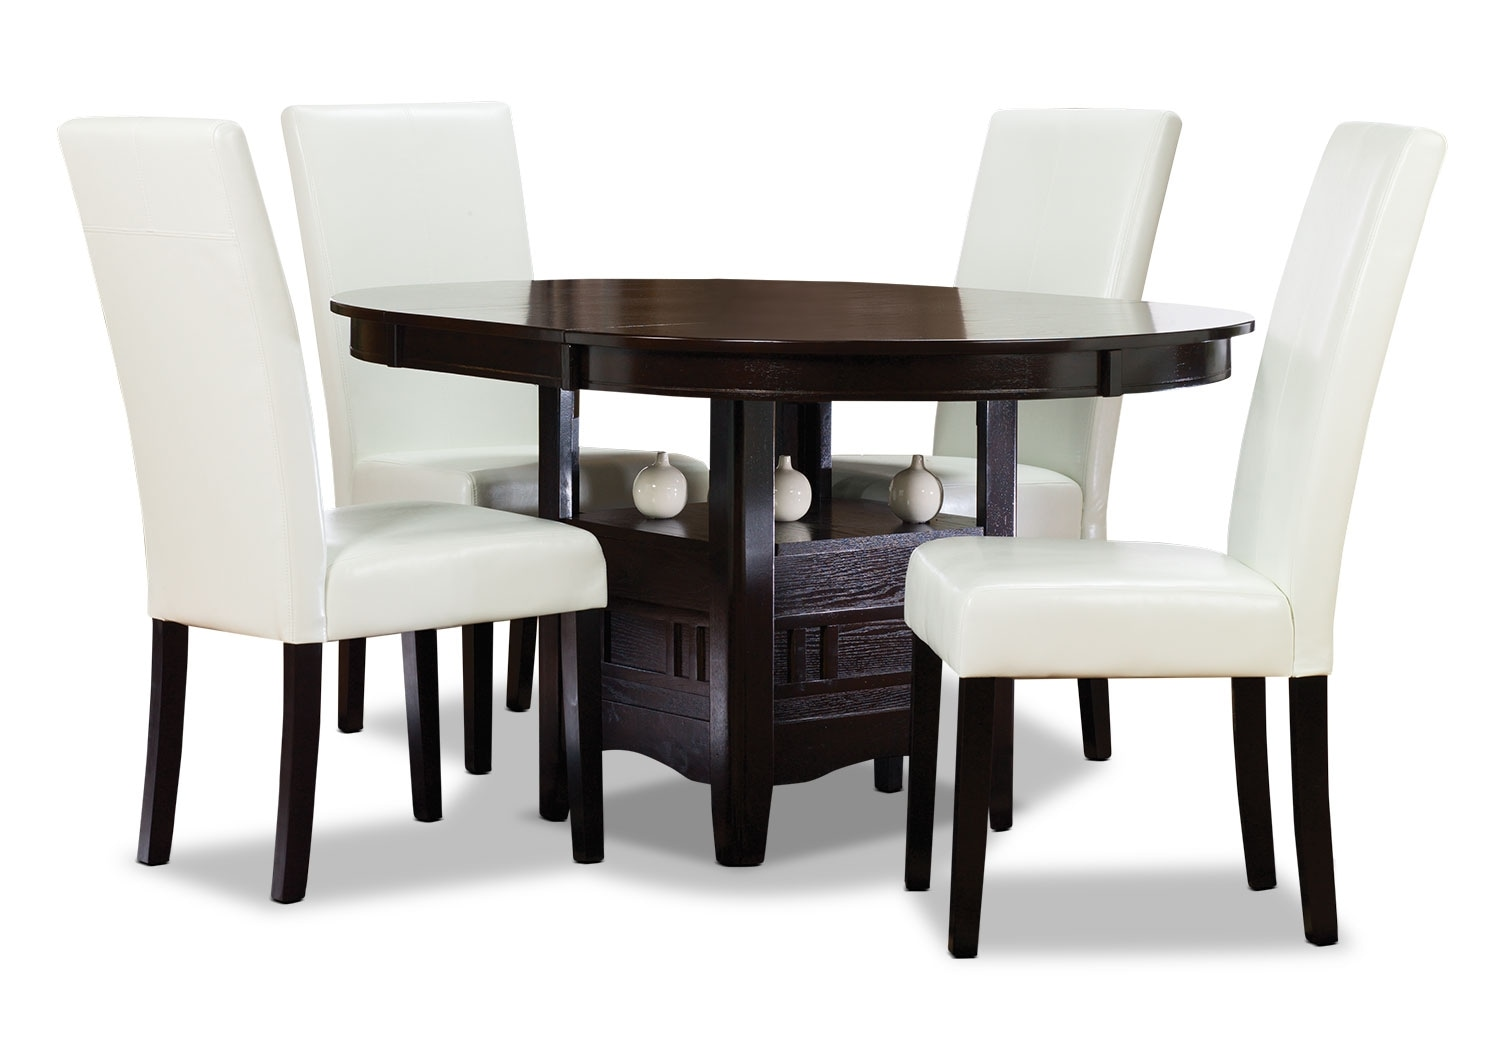 Dalton 5 Piece Chocolate Dining Package With White Chairs